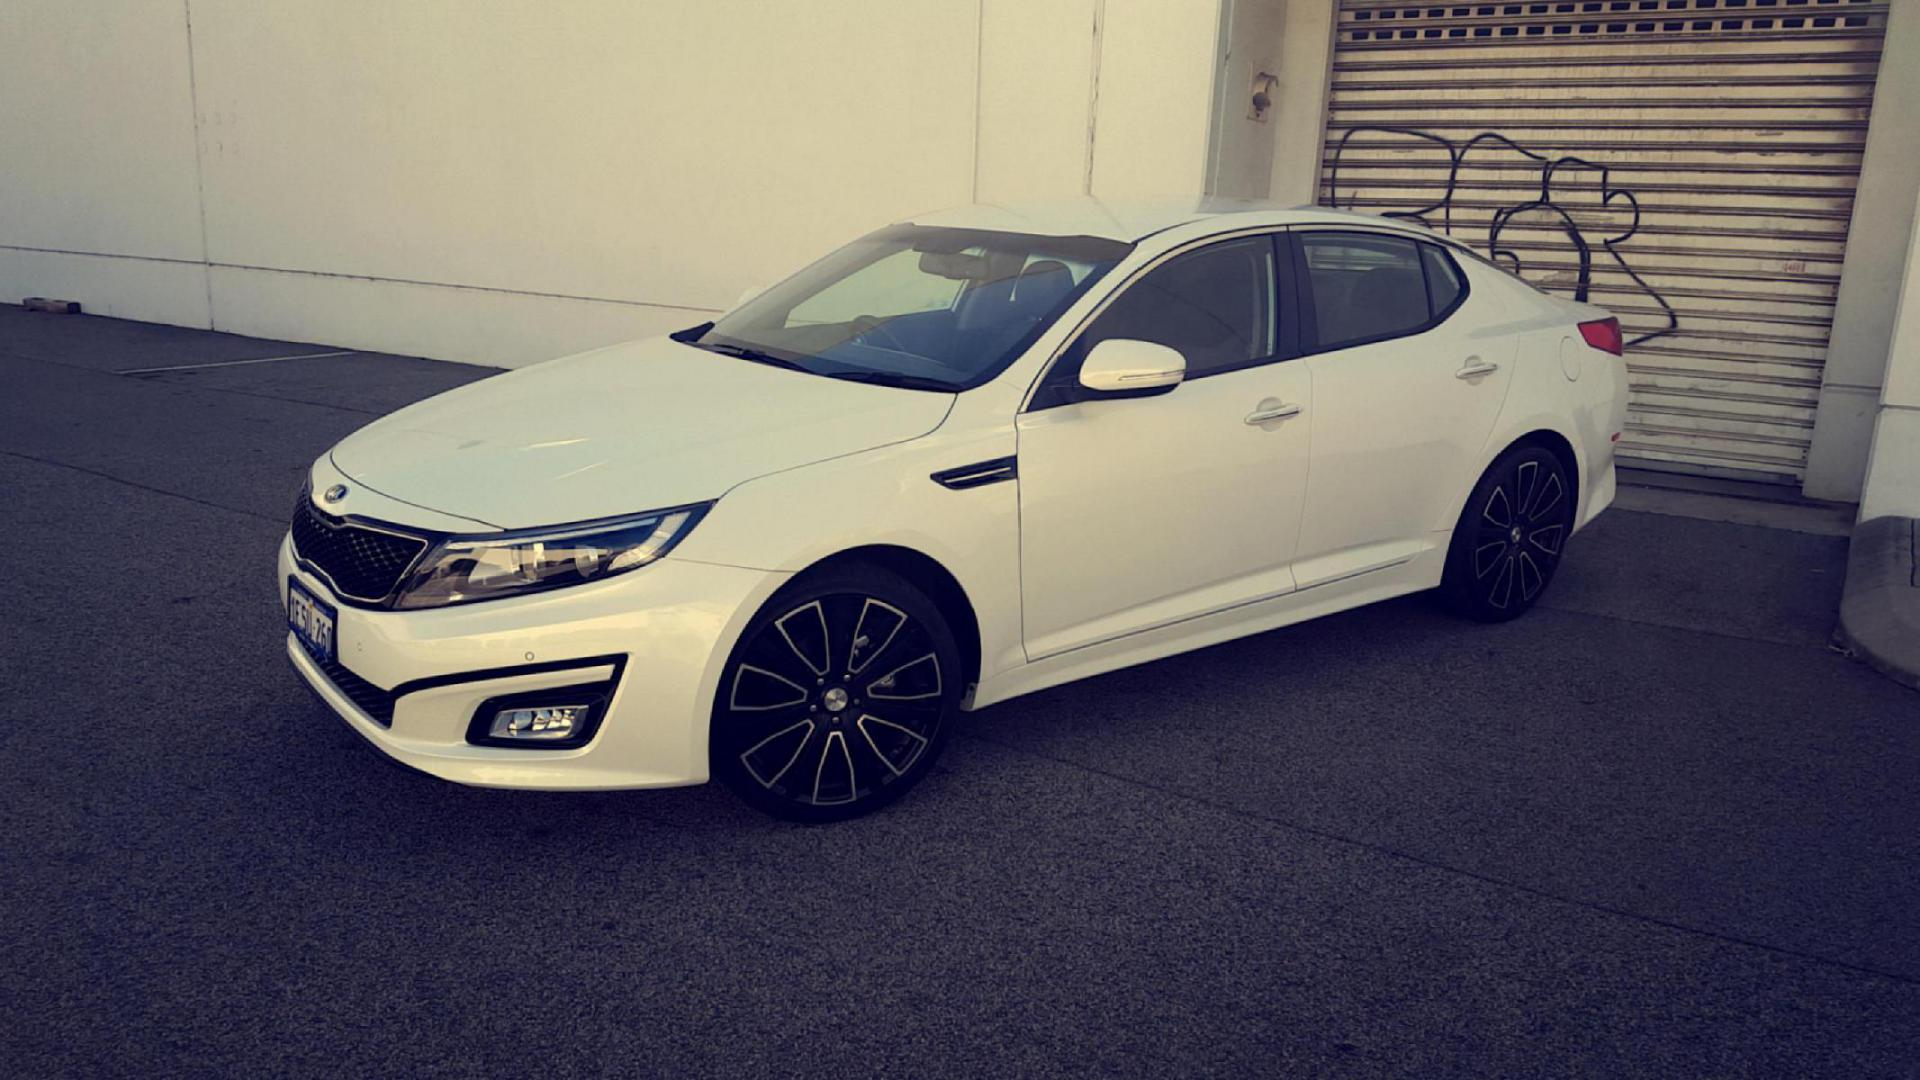 New Optima owner from Western Australia-snapchat-5297418515679021888_1462146300171.jpg